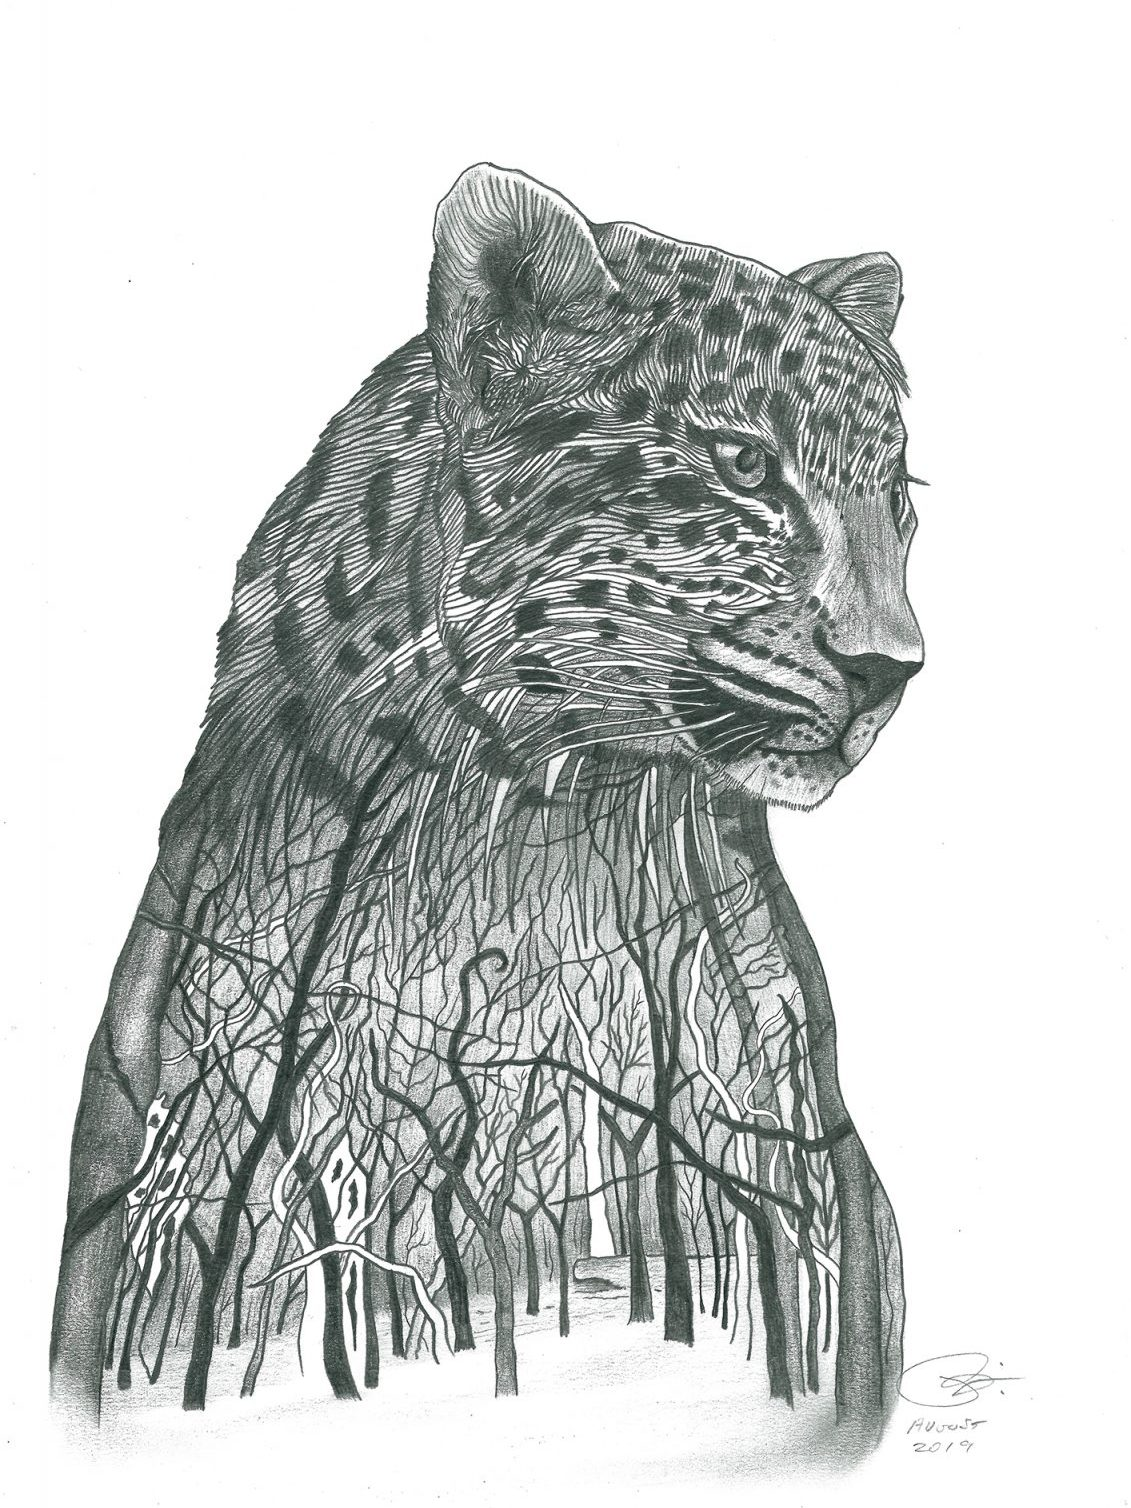 Amur Leopard | 29.4 x 42 cm | Pencil on 200 gsm paper | 2019 - created for Sketch for Survival auction, to raise money and awareness for endangered species across the globe